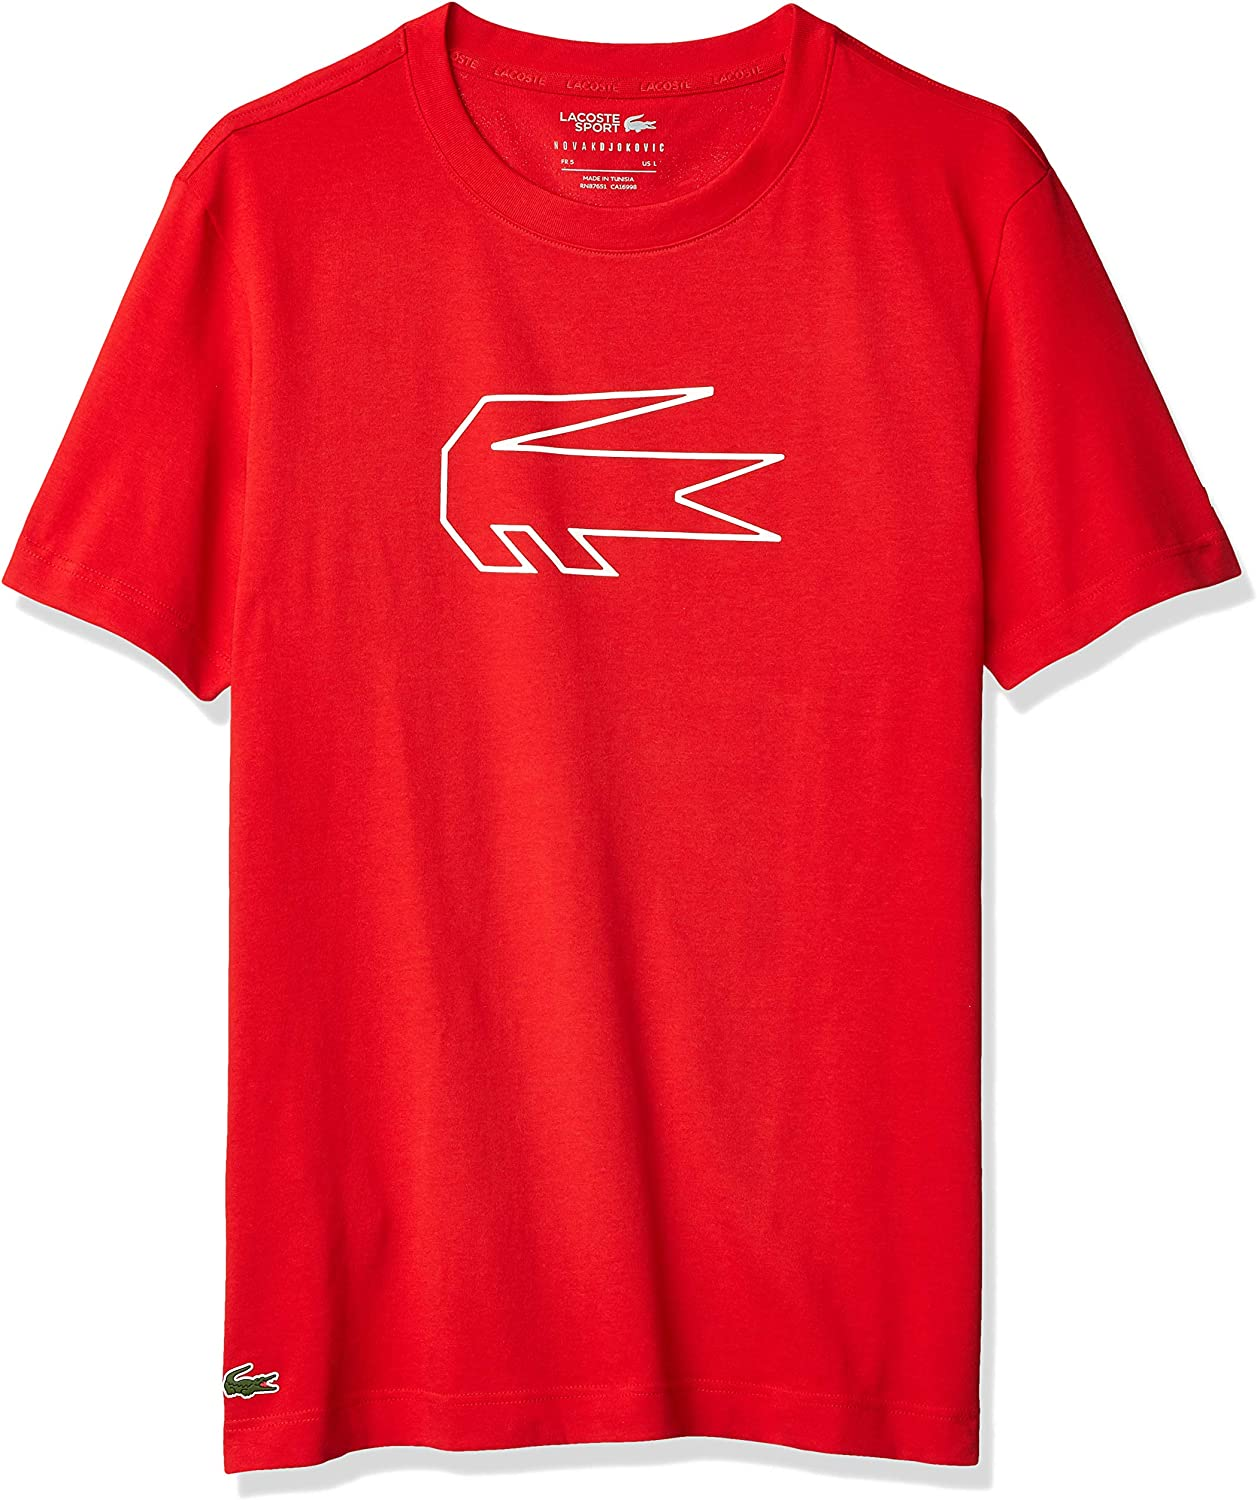 Lacoste Men S Sport Novak Djokovic Big Croc Technical Jersey Tee At Amazon Men S Clothing Store